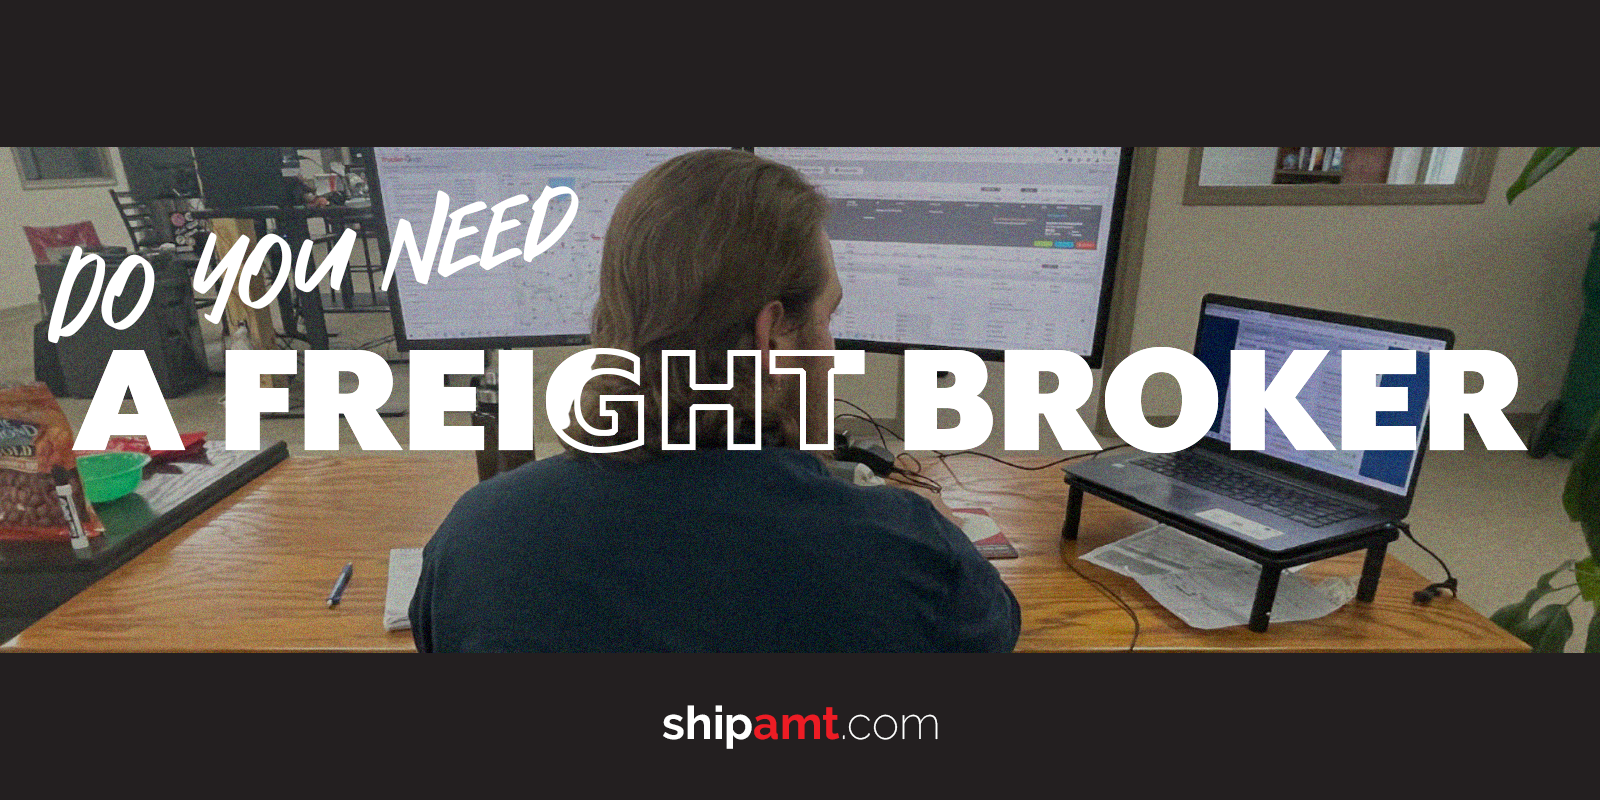 Do you need a freight broker?